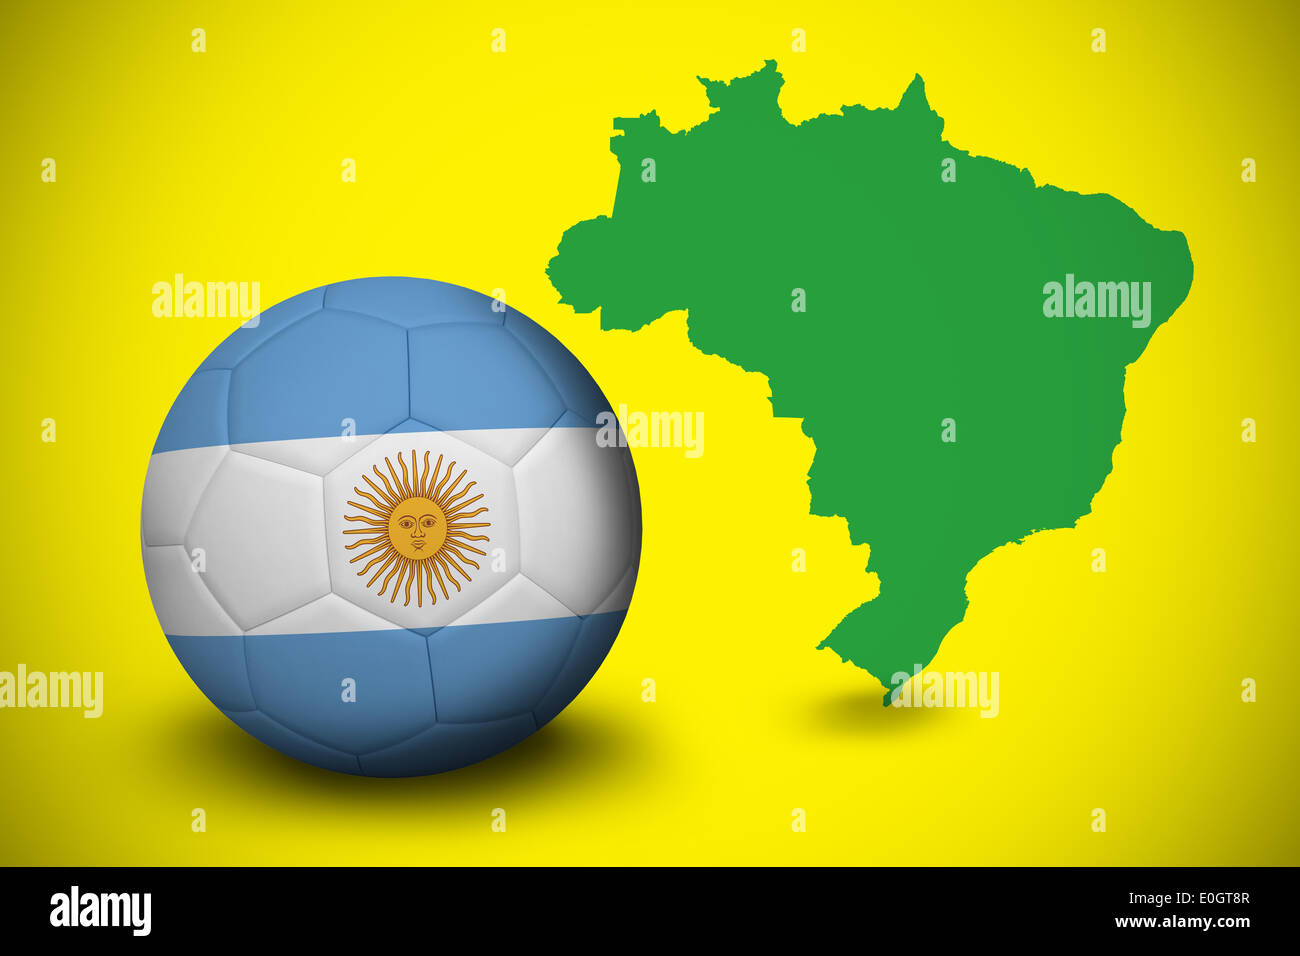 Argentina Flag Outline Stock Photos Argentina Flag Outline Stock